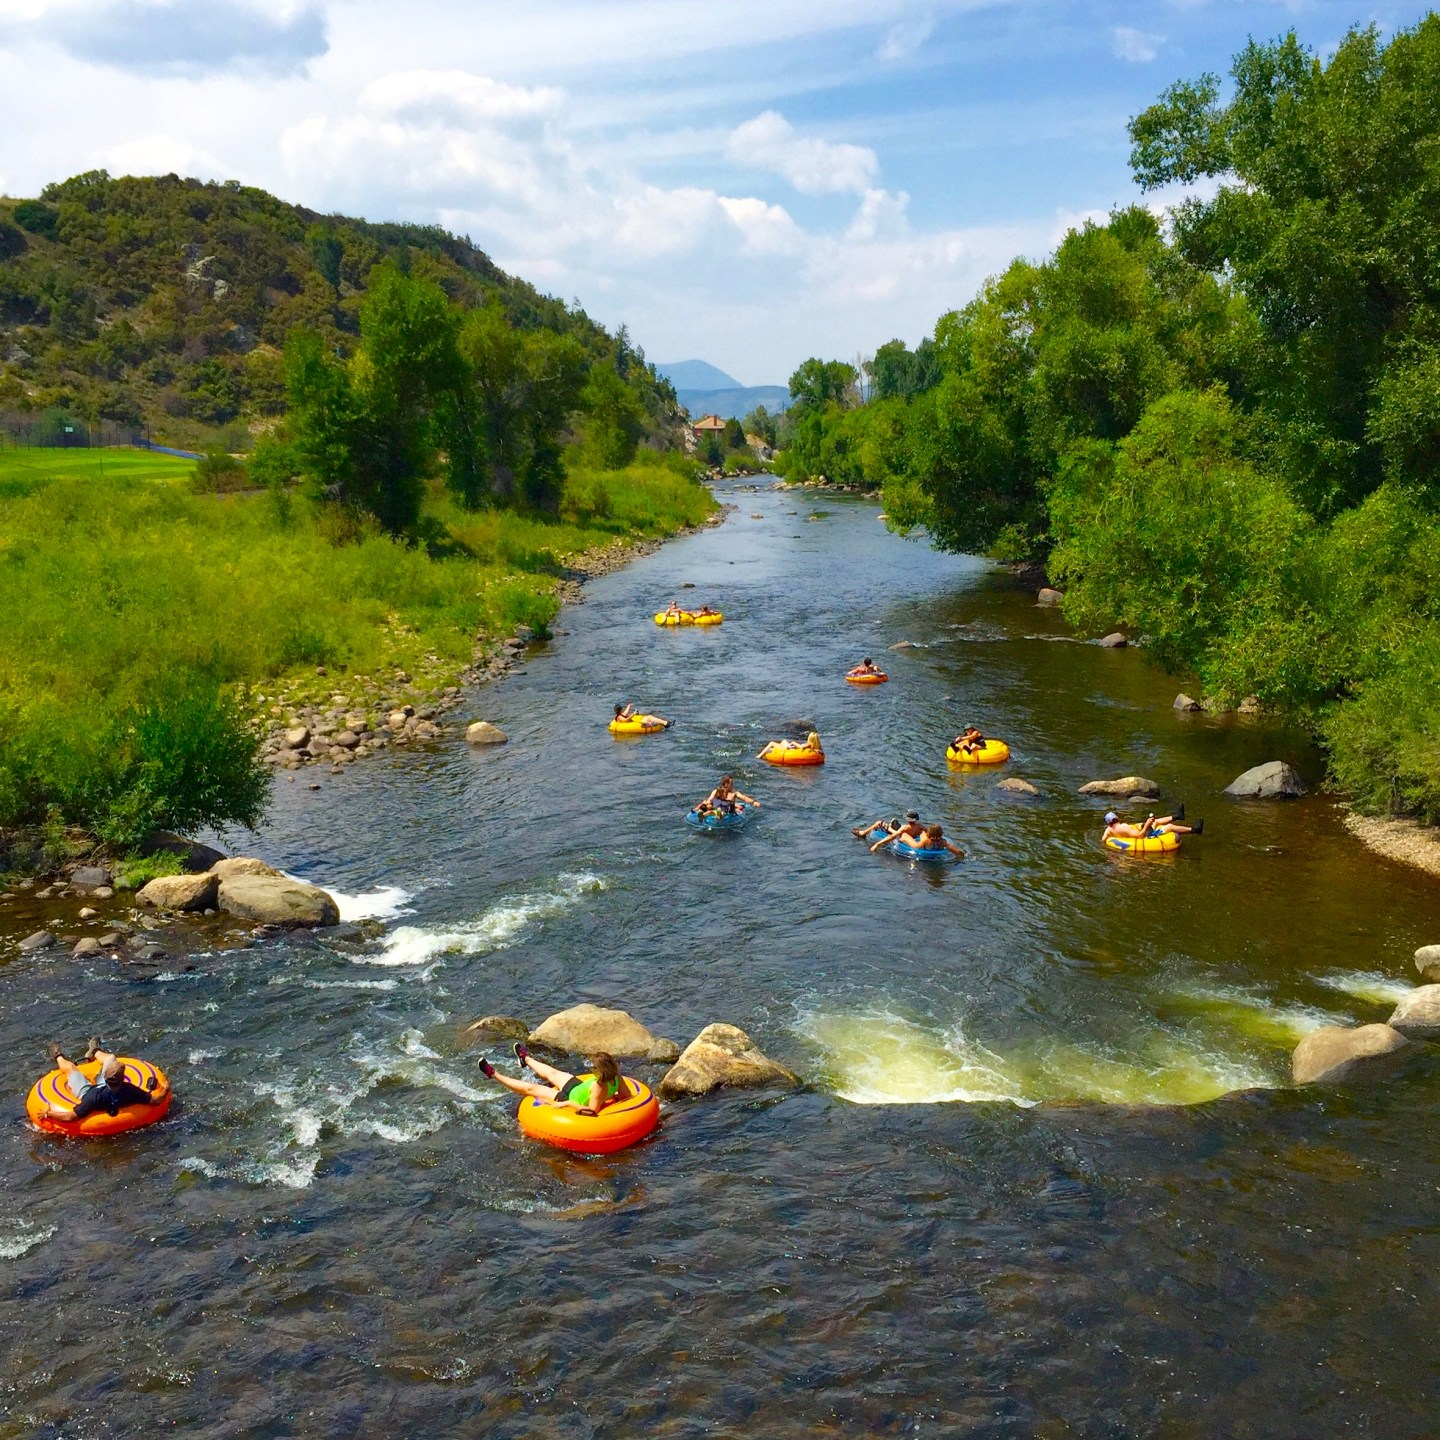 Tubing is one of the fun things to do in Steamboat Springs in summer